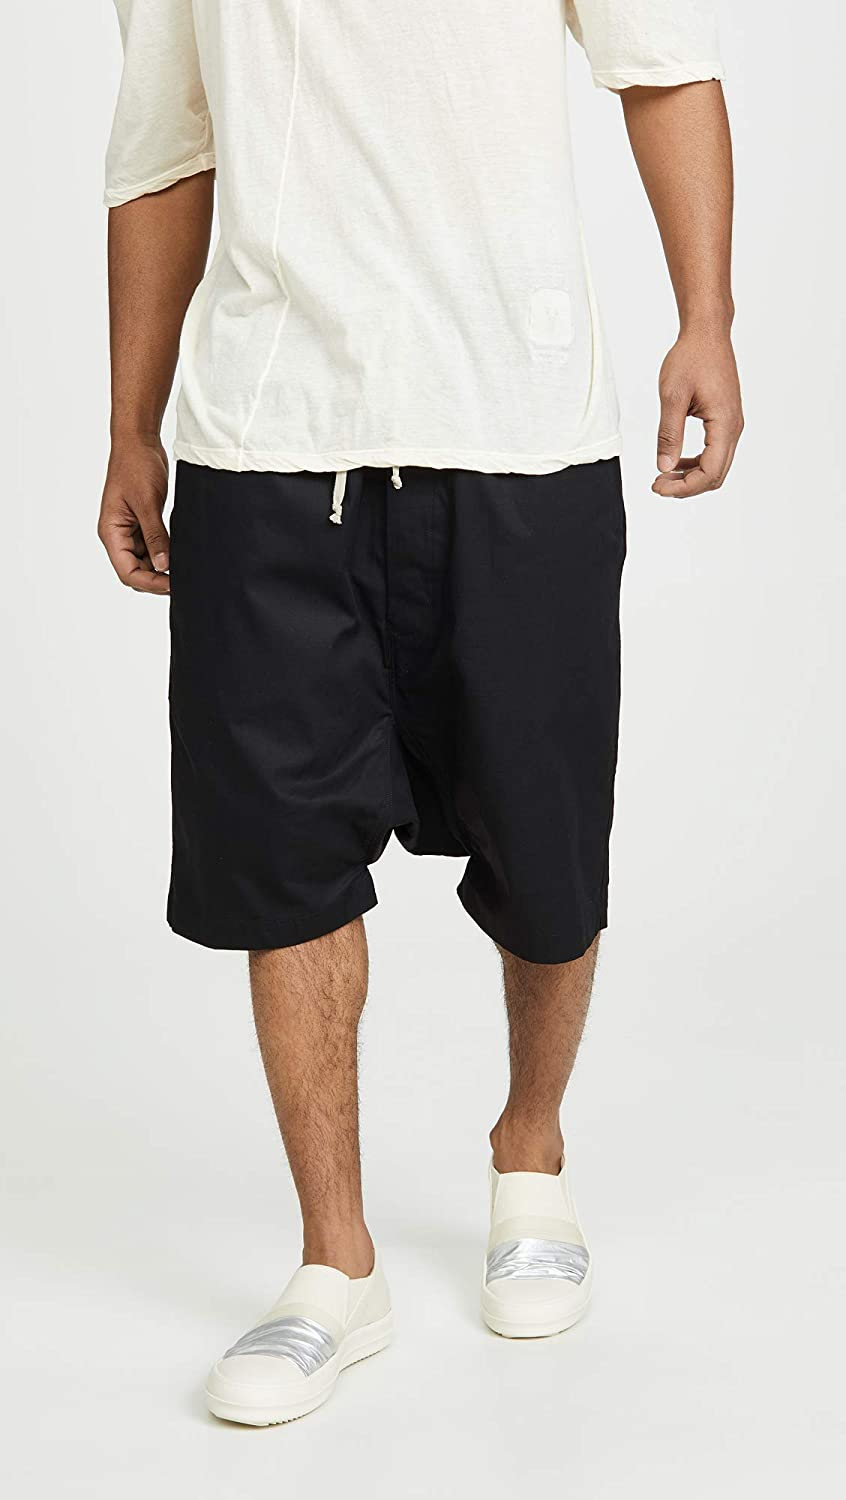 649aa3c925 Rick Owens DRKSHDW Men's Pod Shorts at Amazon Men's Clothing store: